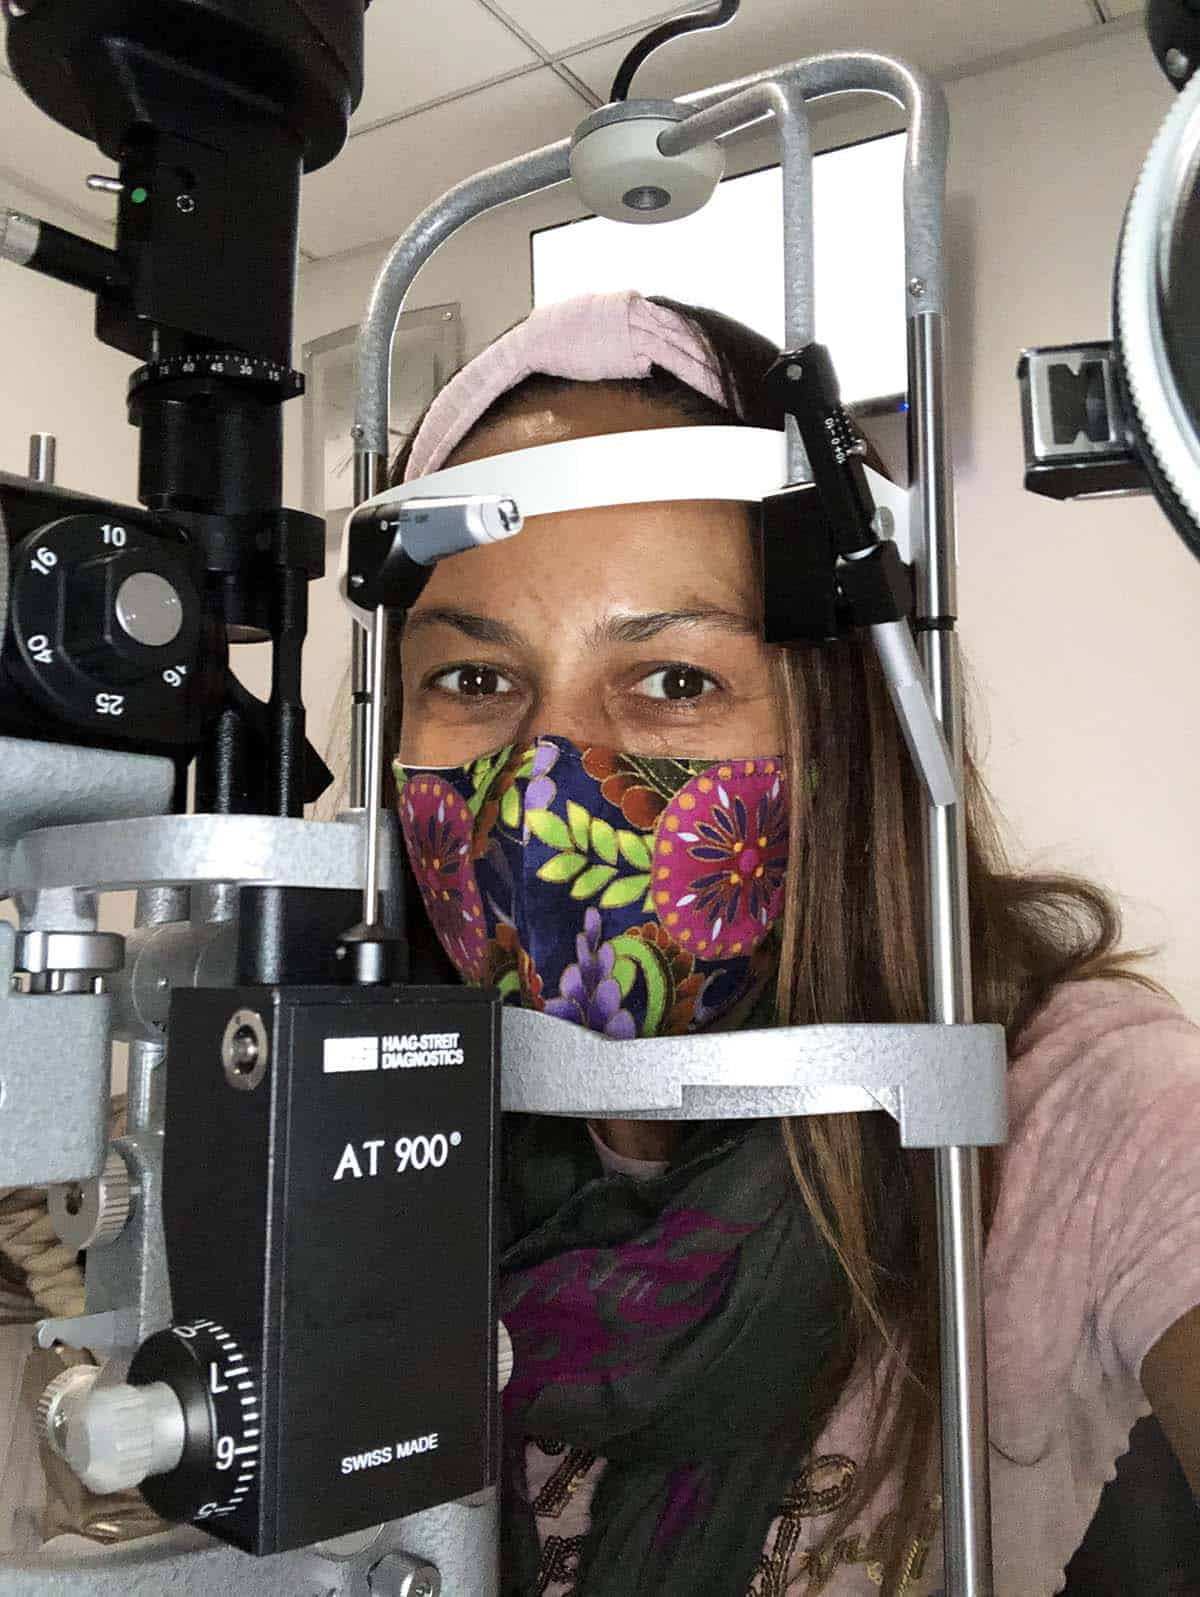 Christel with her head in the Slit Lamp